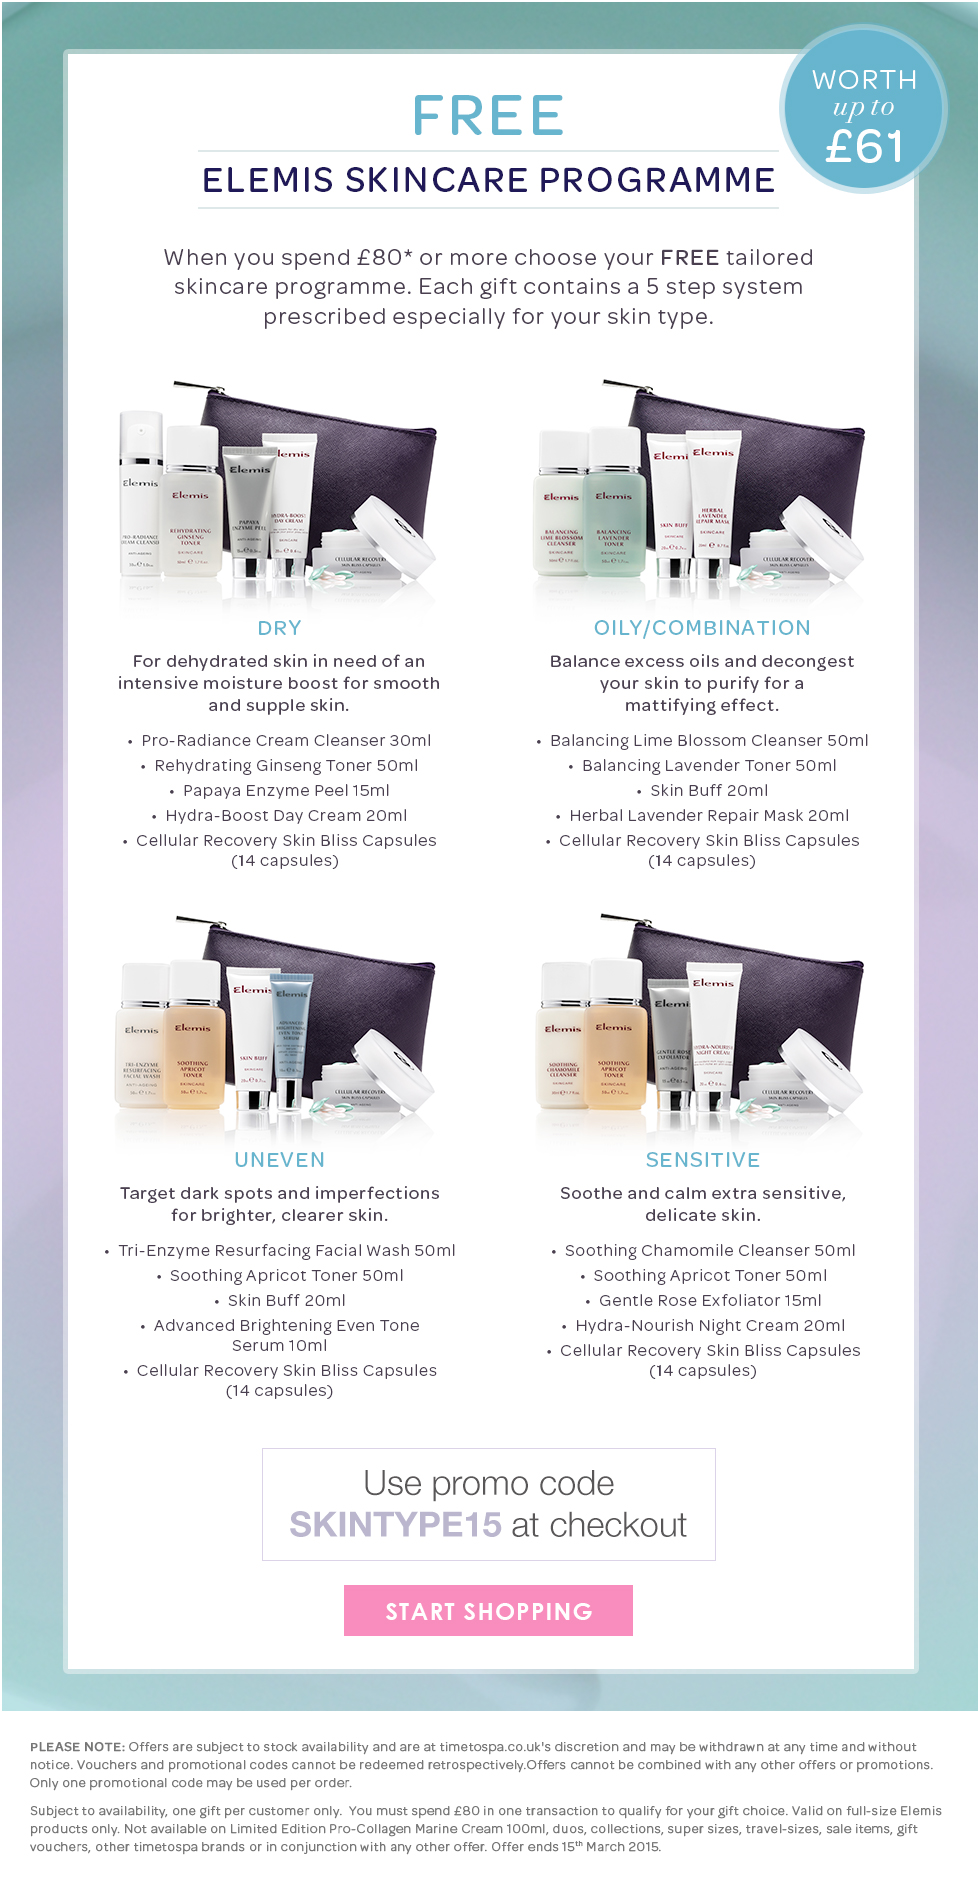 Free ELEMIS Skincare Programme - Worth up To £61 - From A Choice Of 4